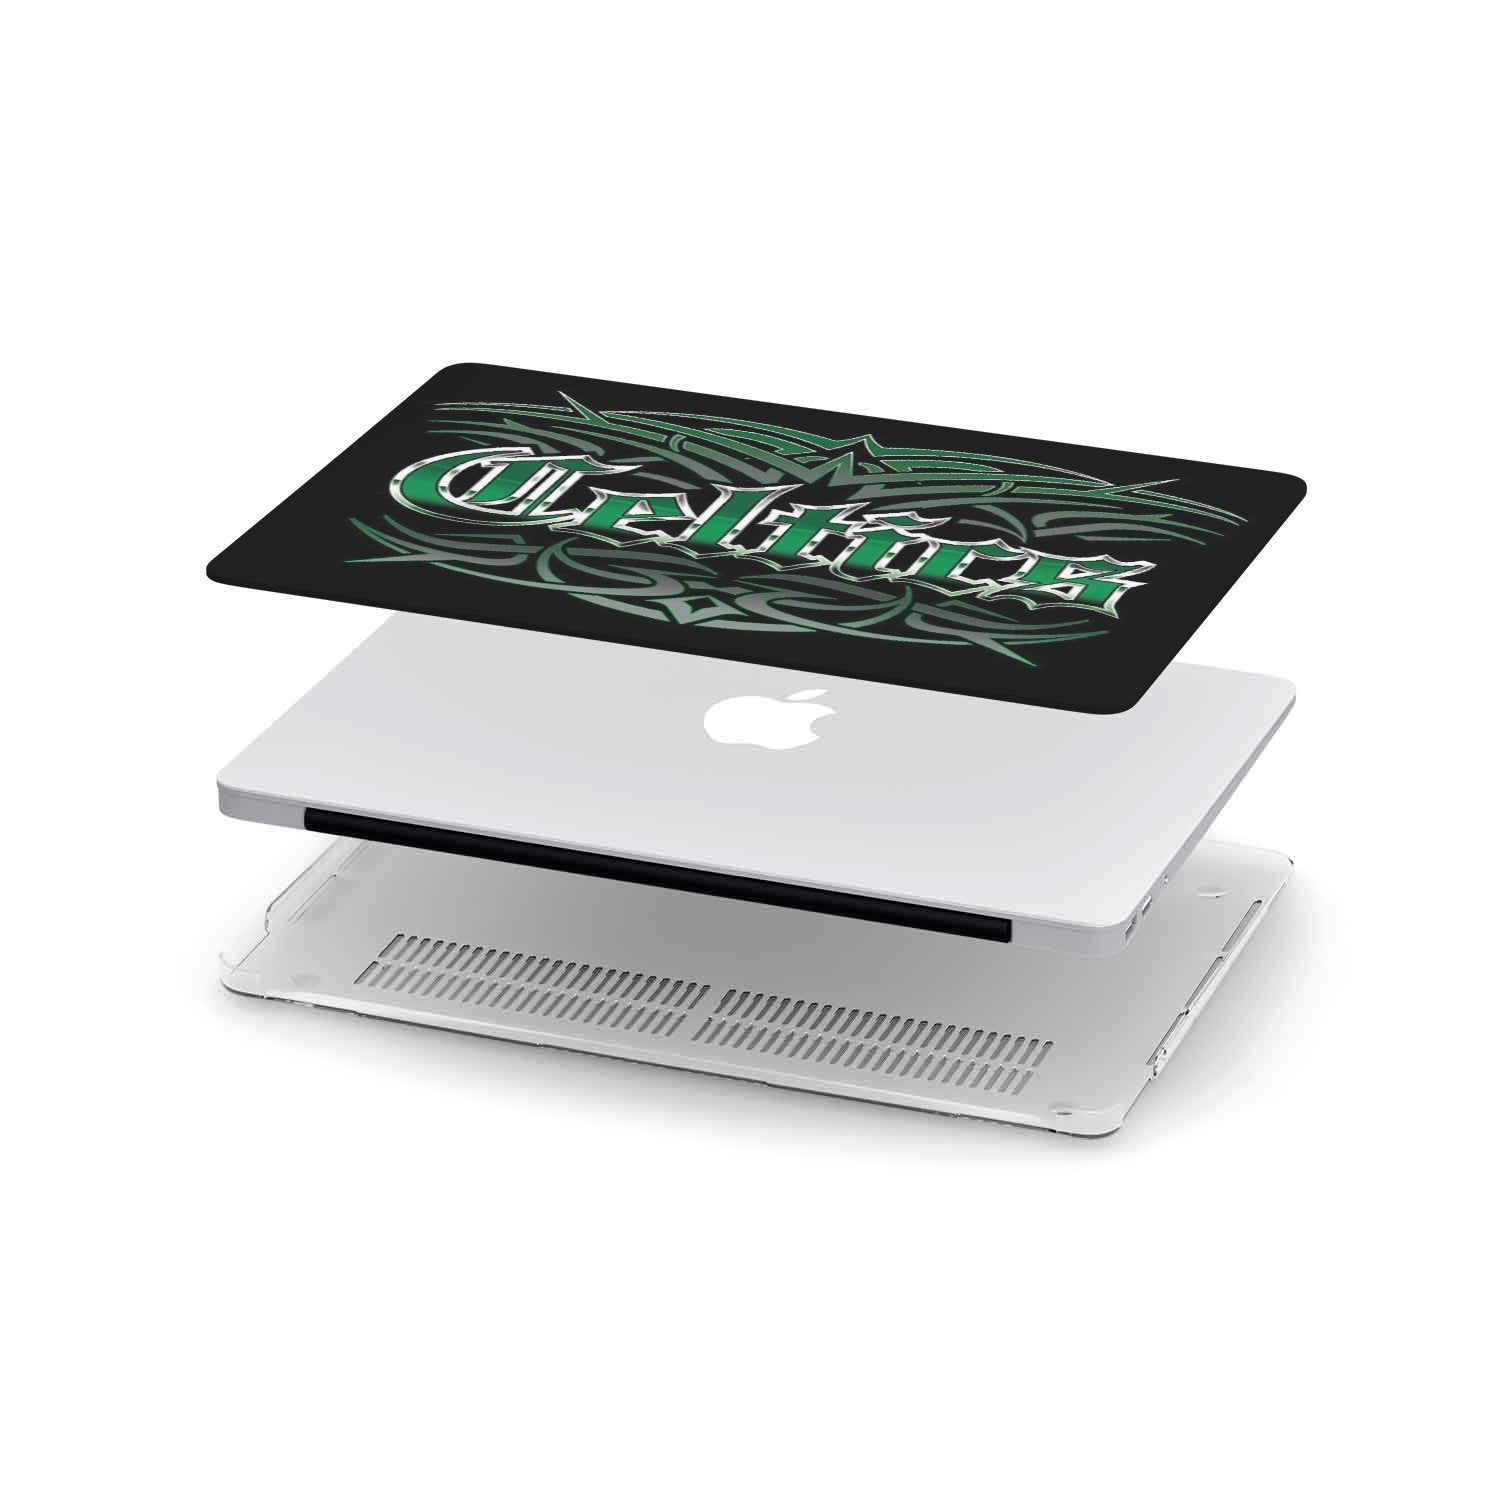 Celtics Team Custom MacBook Case - Woody Signs Co.